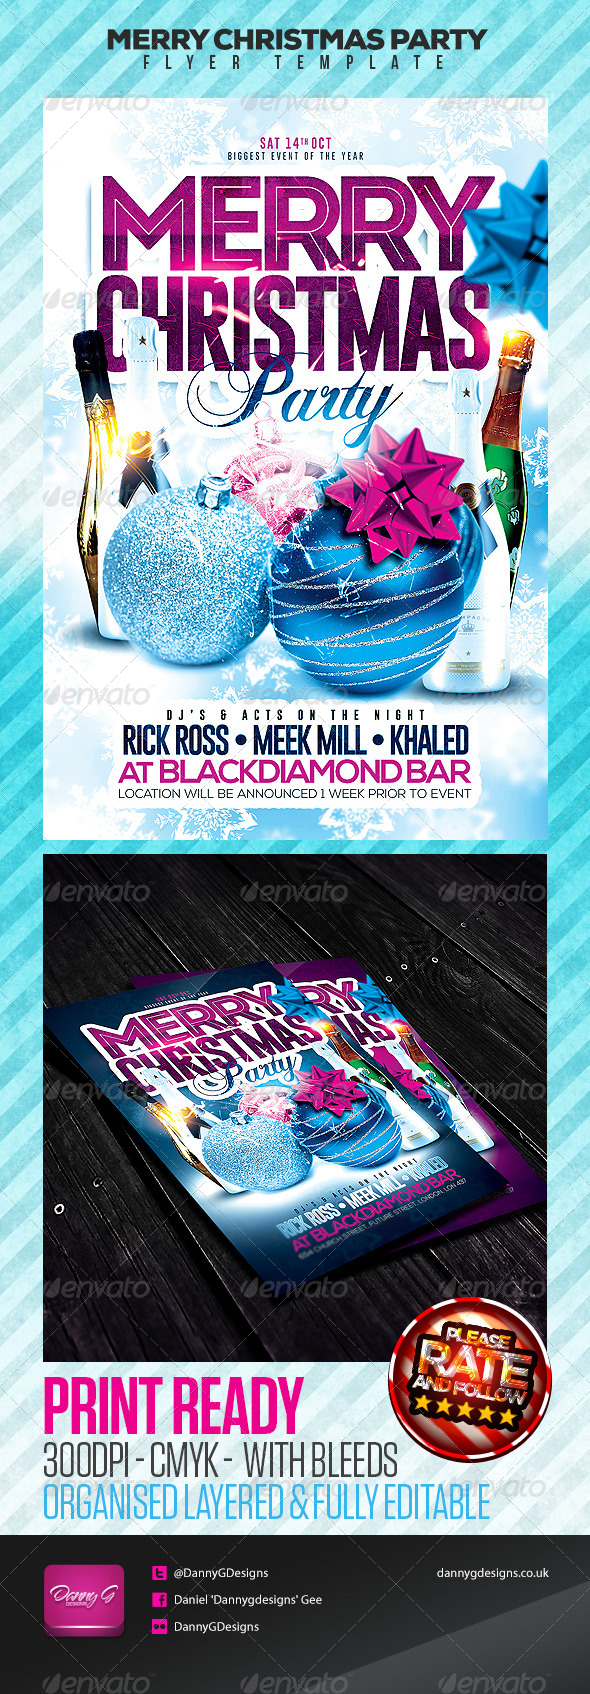 GraphicRiver Merry Christmas Party Flyer Template 6046762